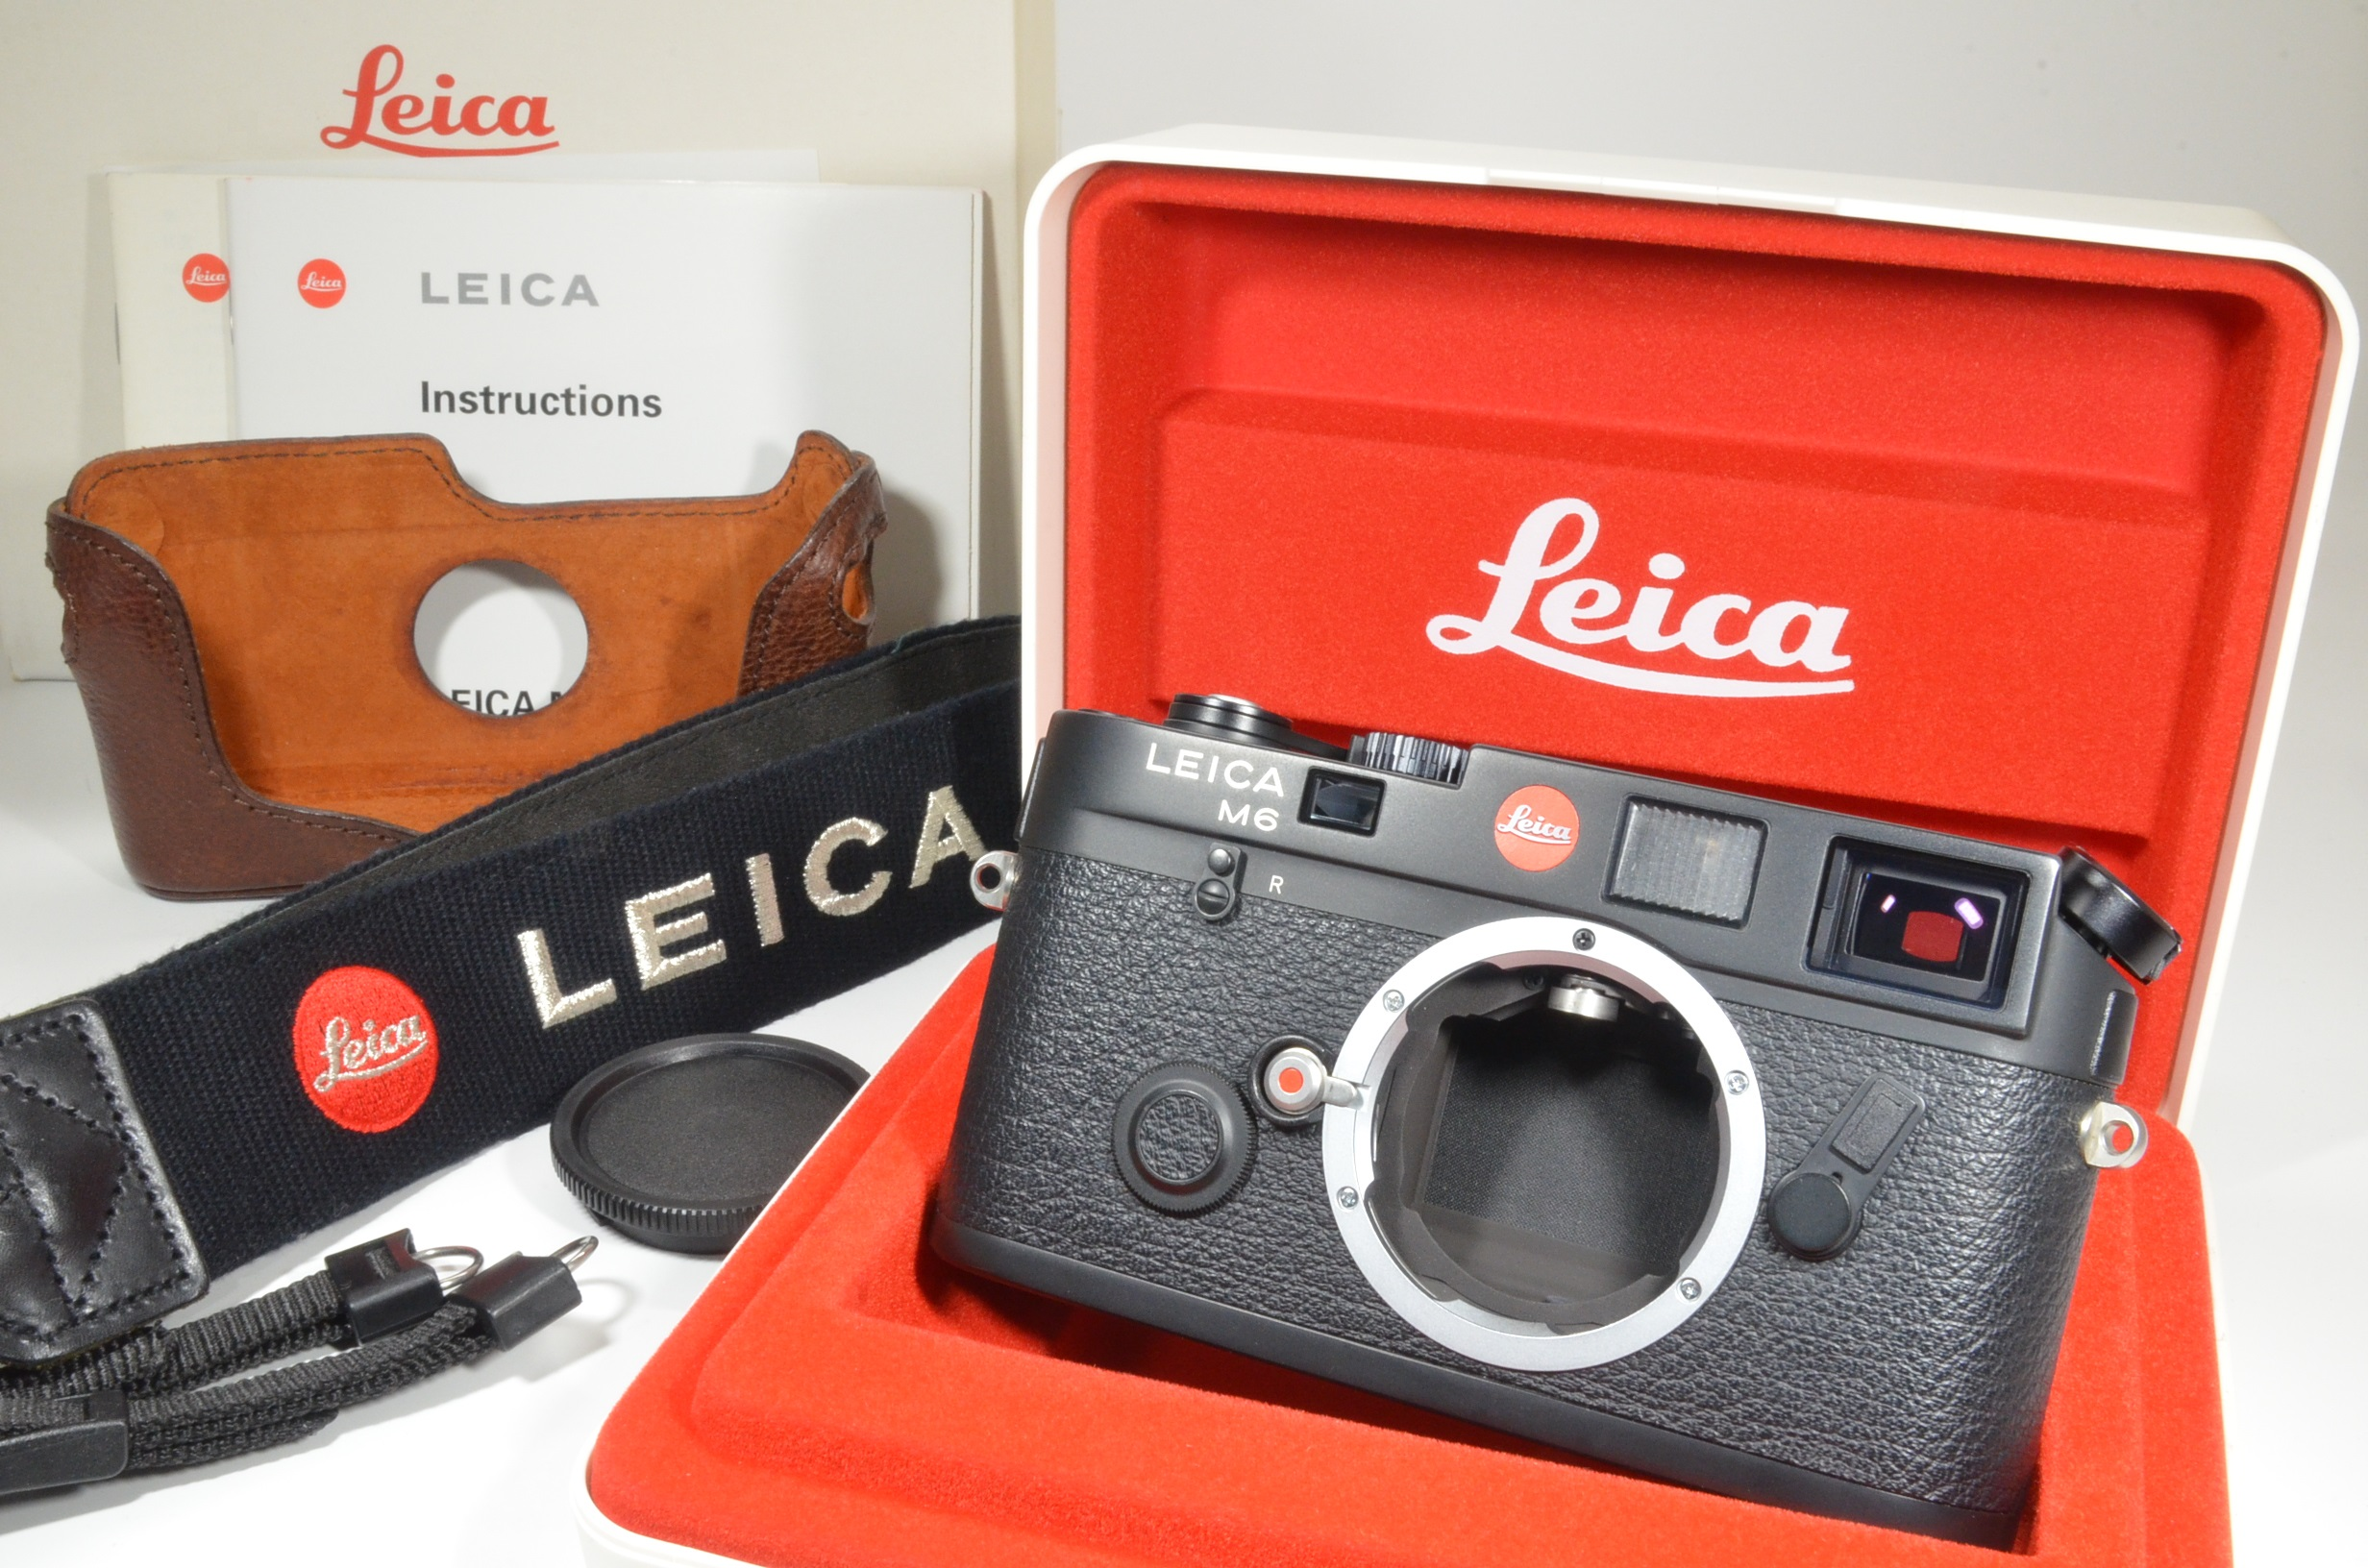 leica m6 black 0.72 in boxed 35mm rangefinder with half case and strap